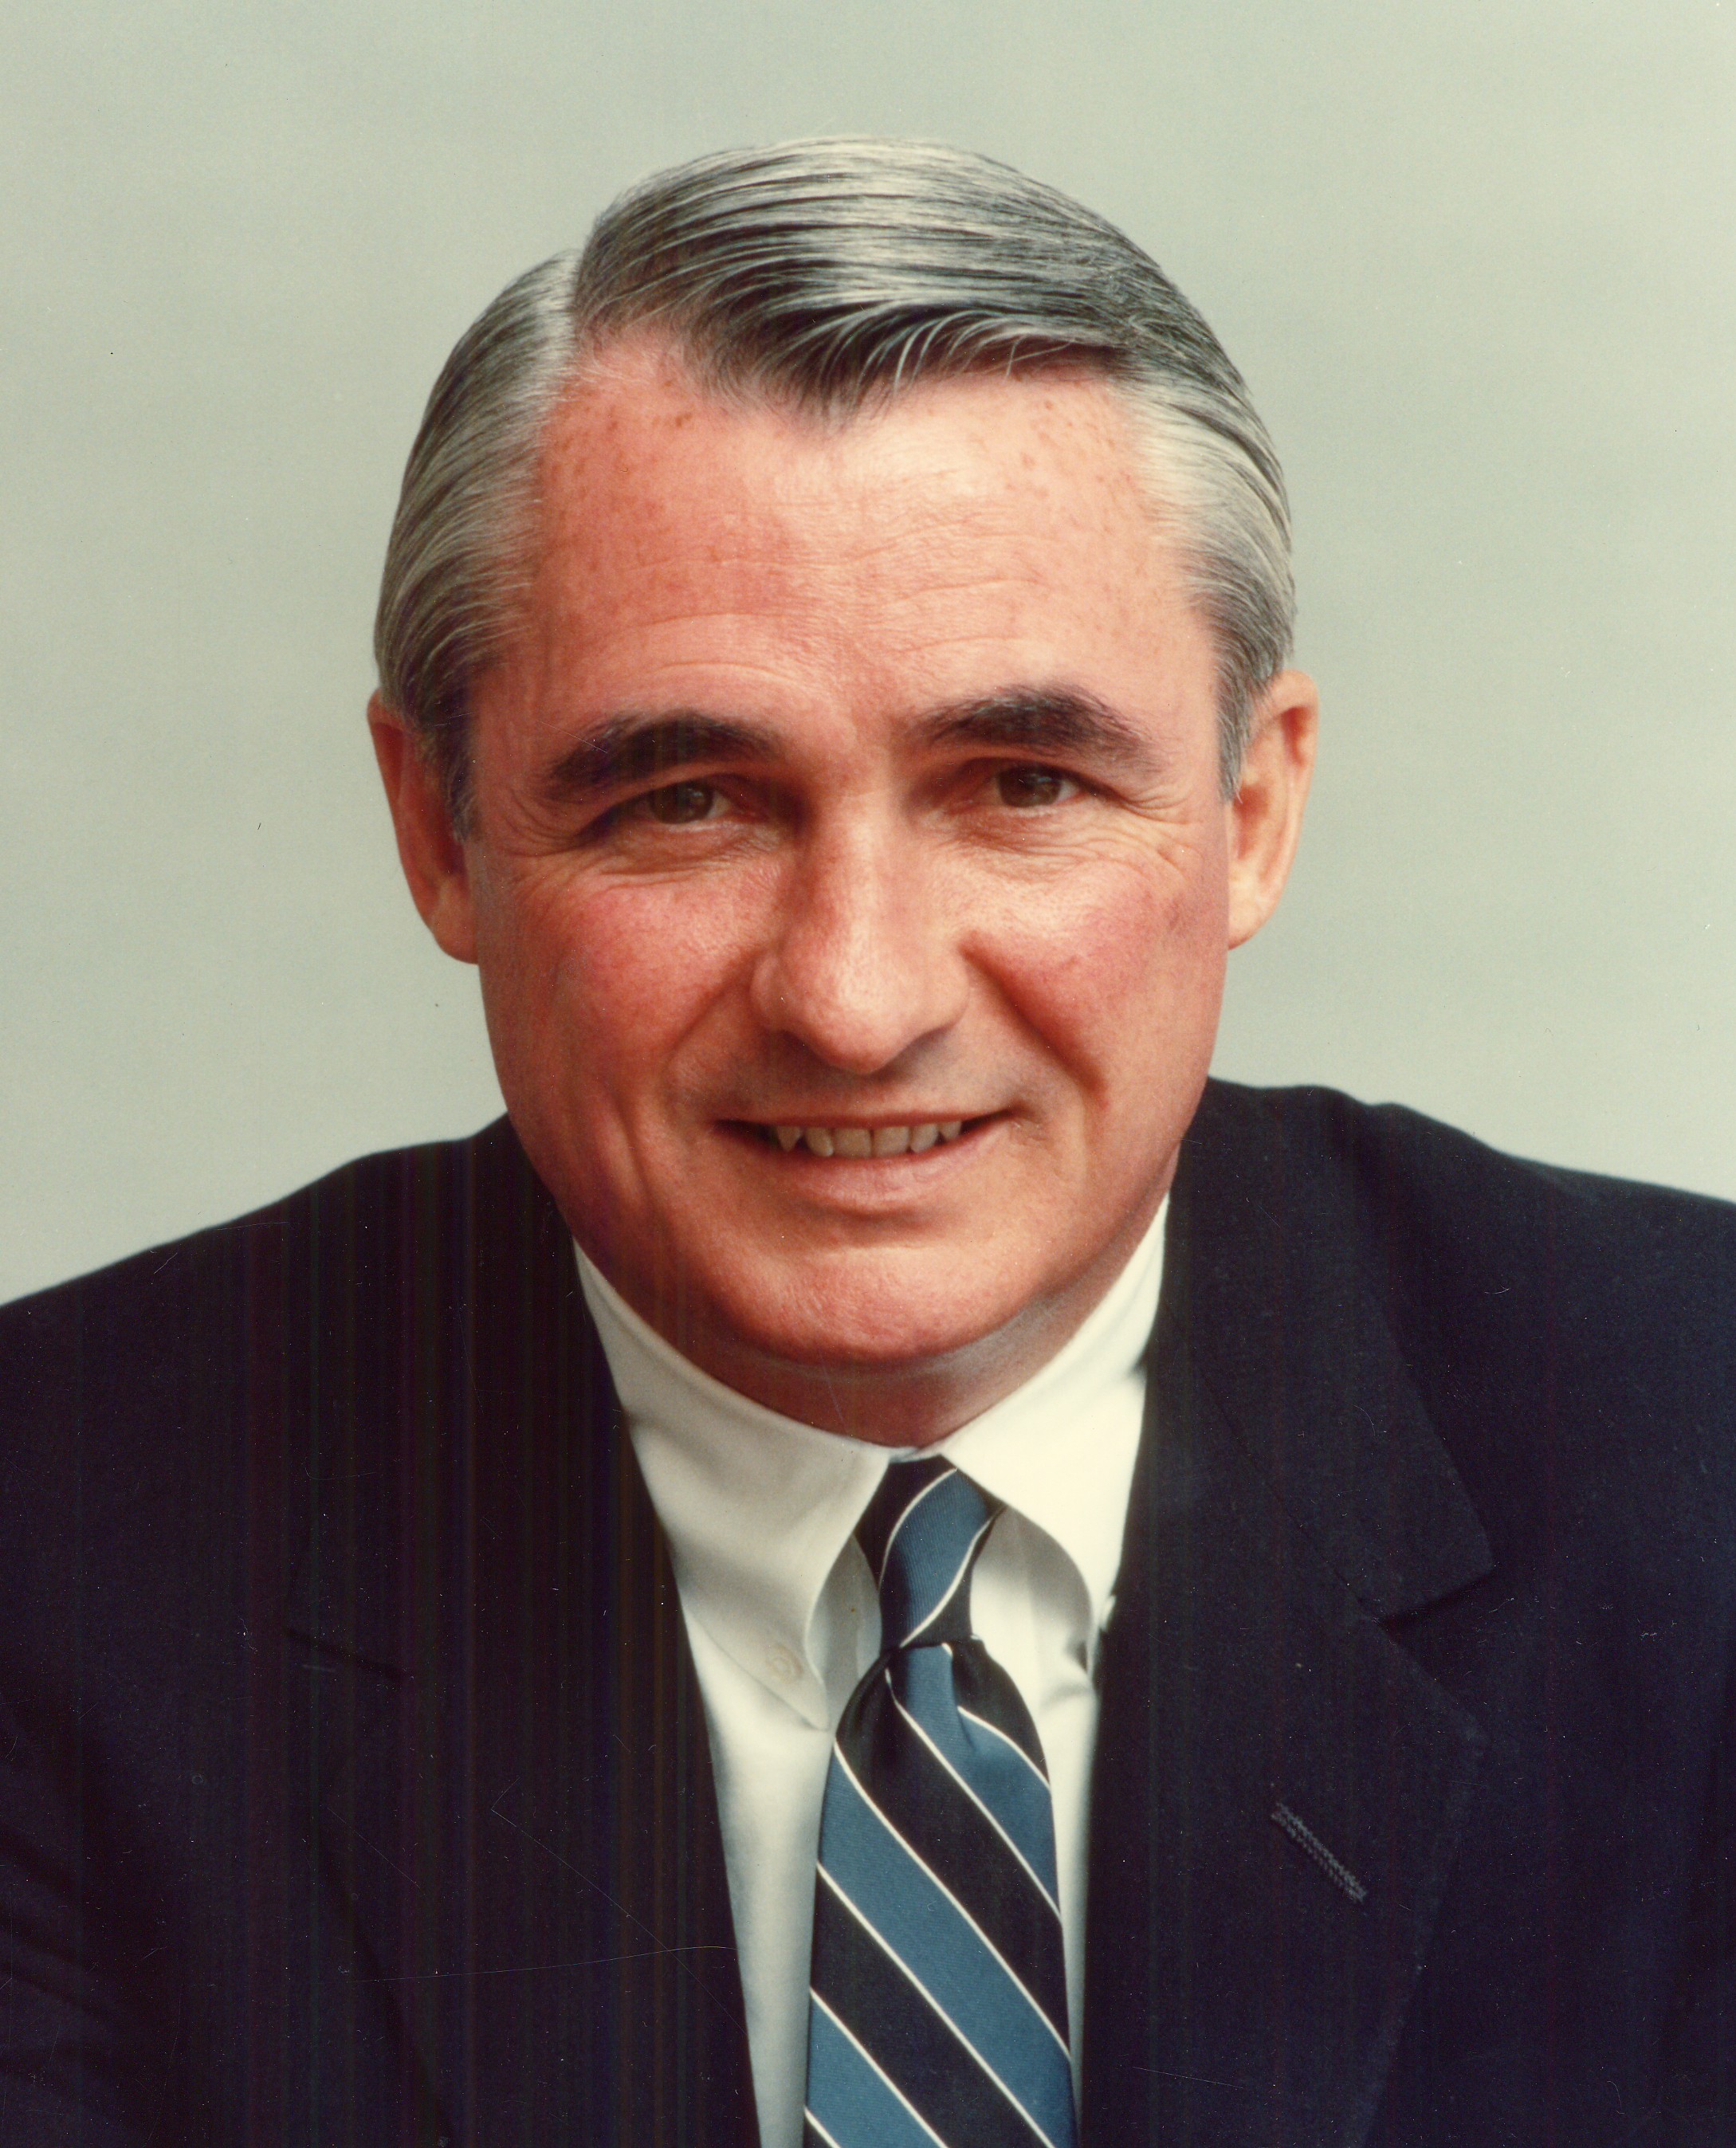 Former IBM CEO and Chairman John F. Akers.